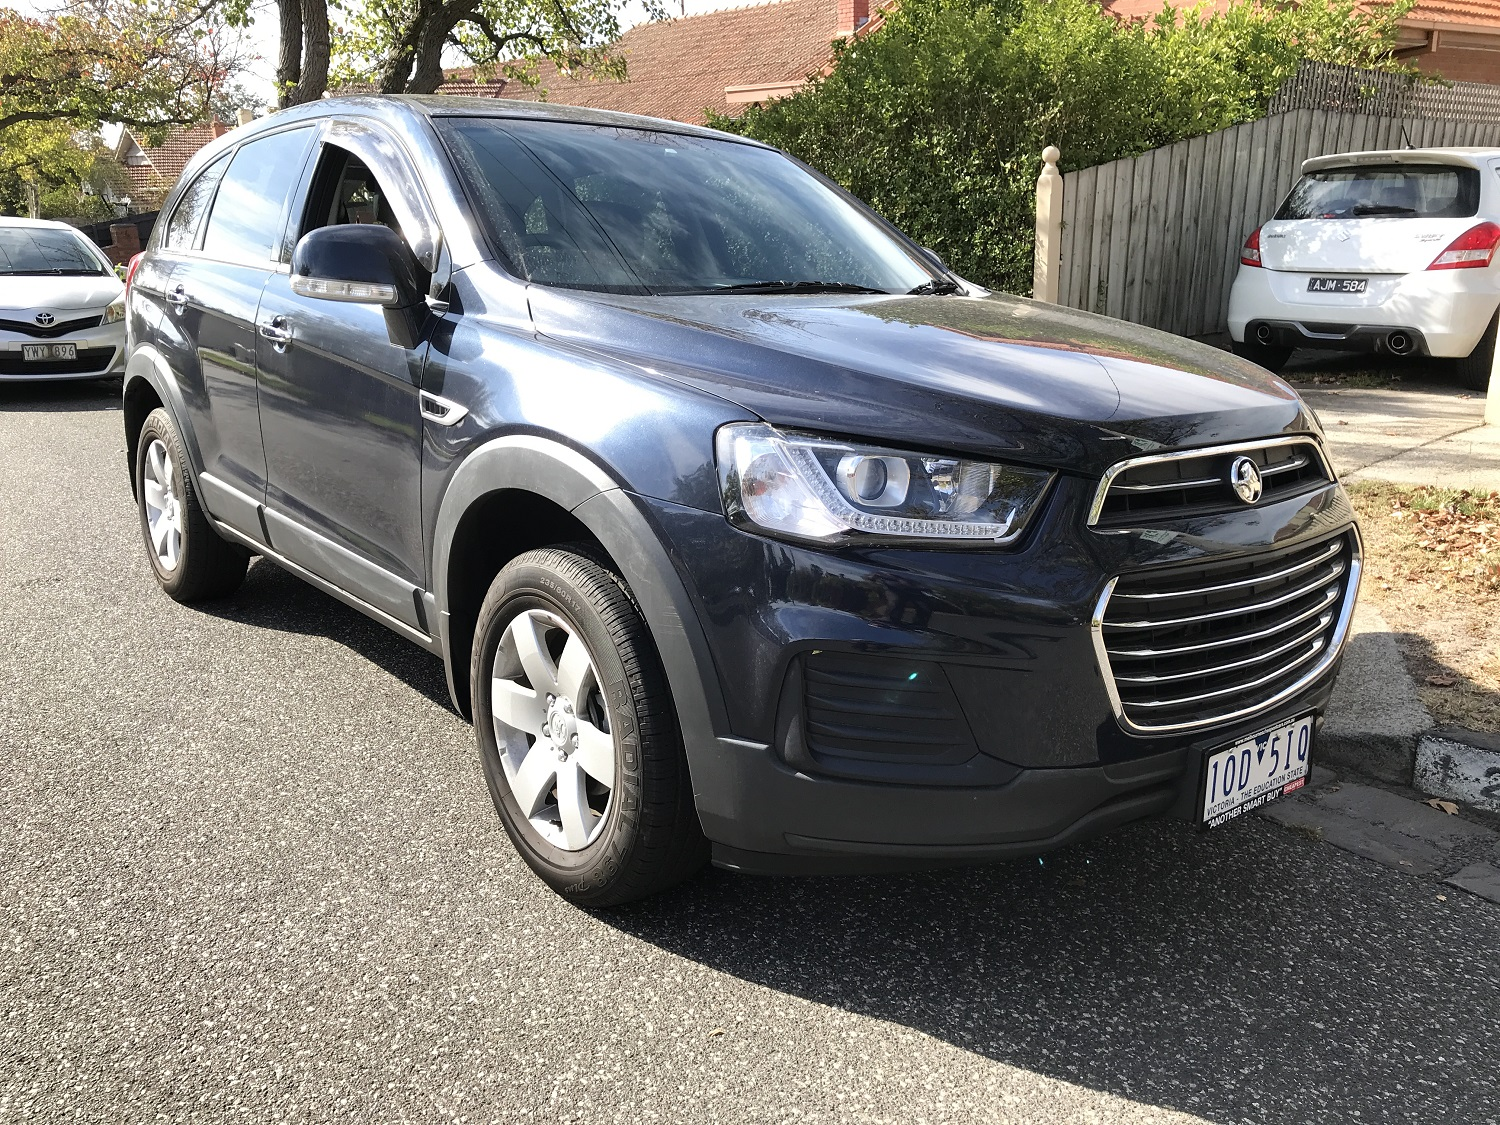 Picture of Alexander's 2017 Holden Captiva